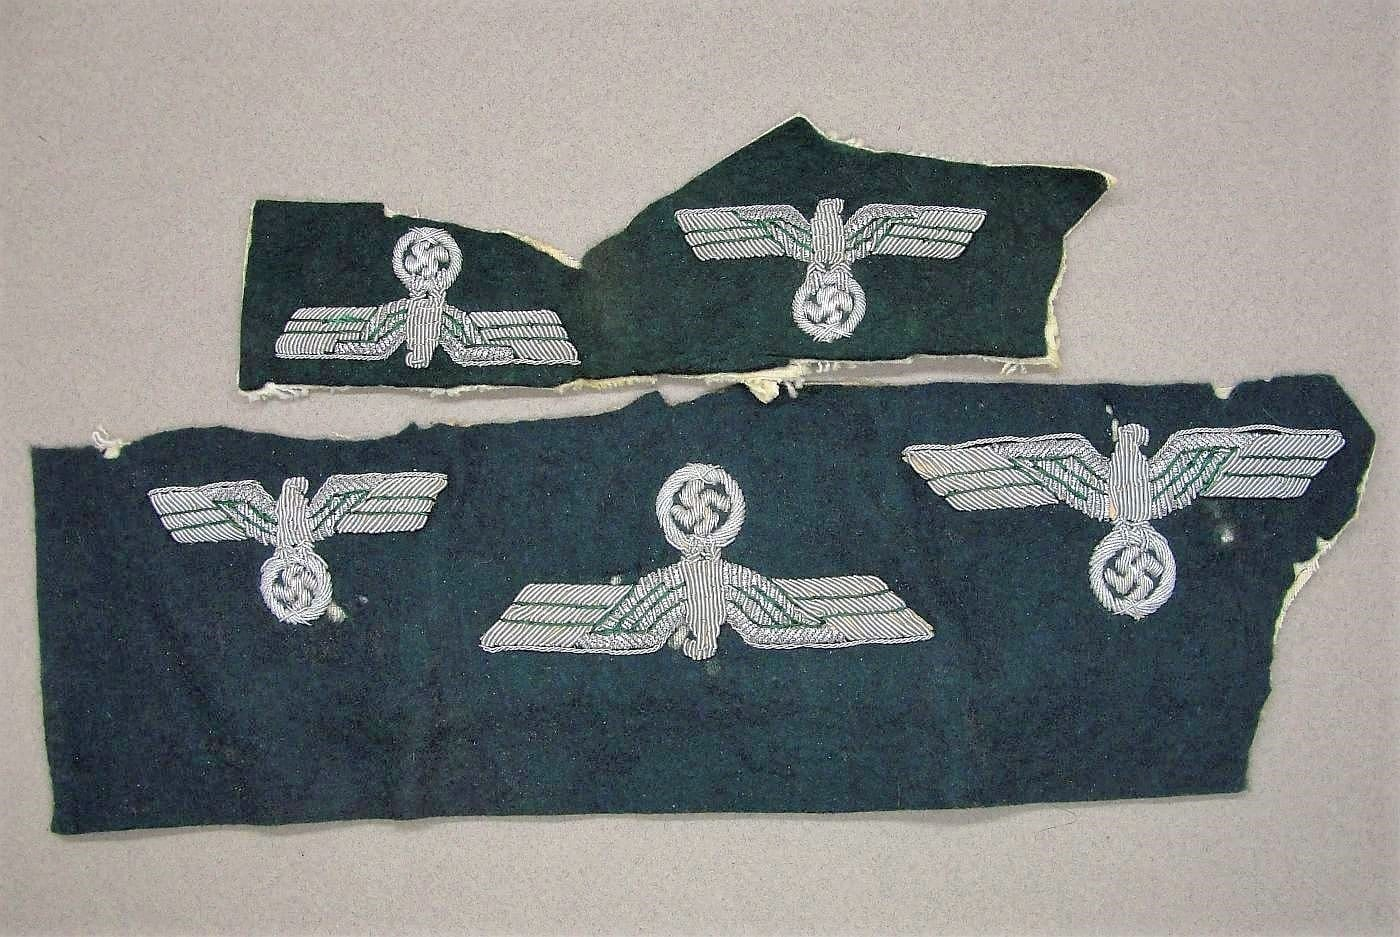 5 Army Officer's Bullion Eagles - Uncut and Un-Issued